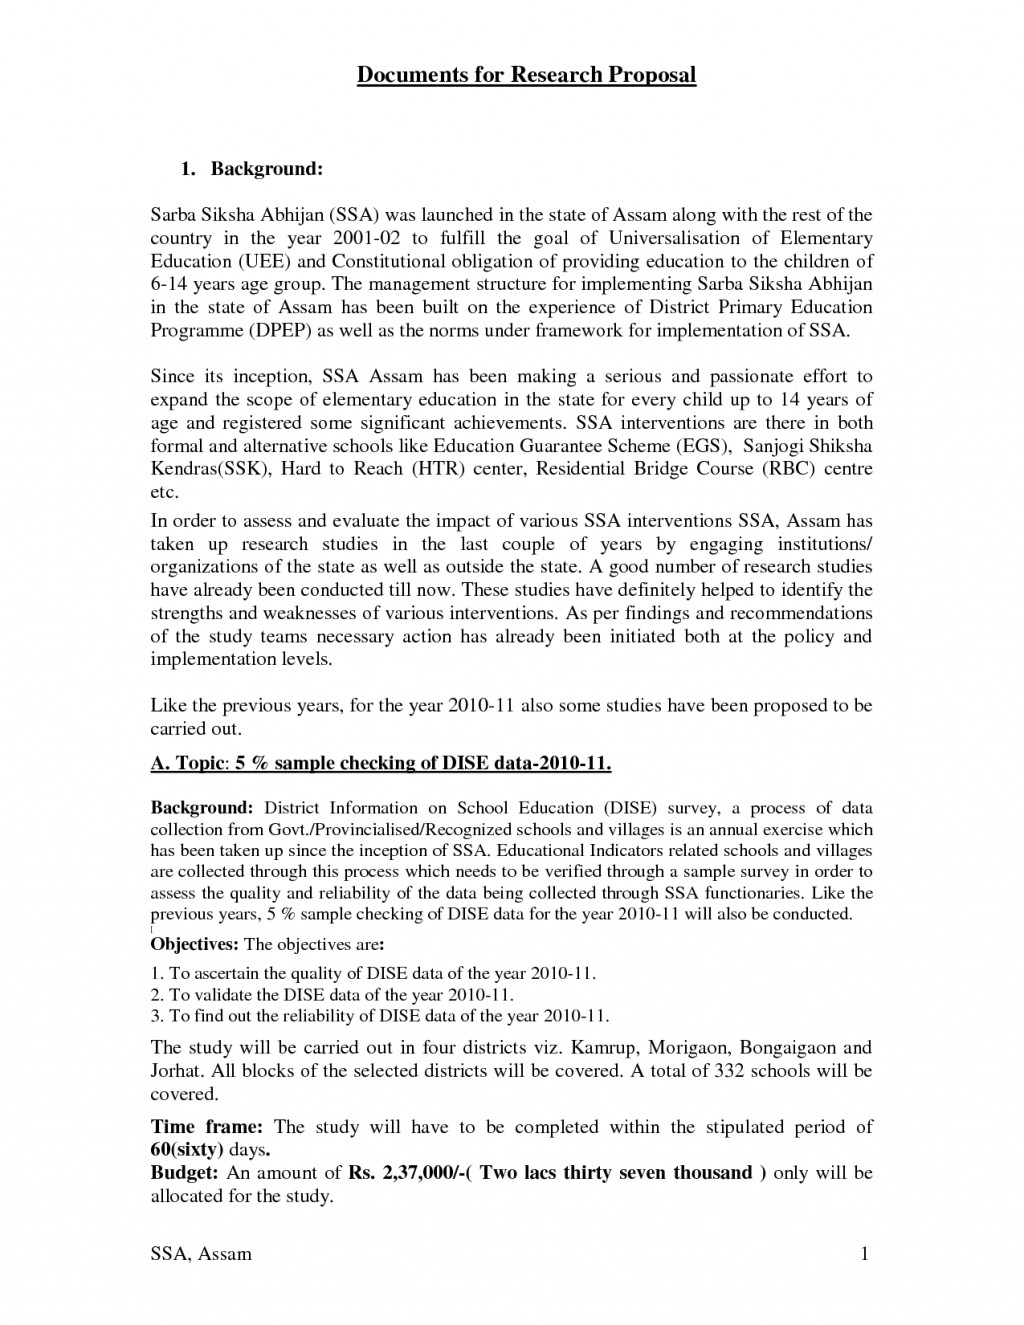 008 Research Paper Proposal Example Topic Sample 501313 Striking Pdf Format Large